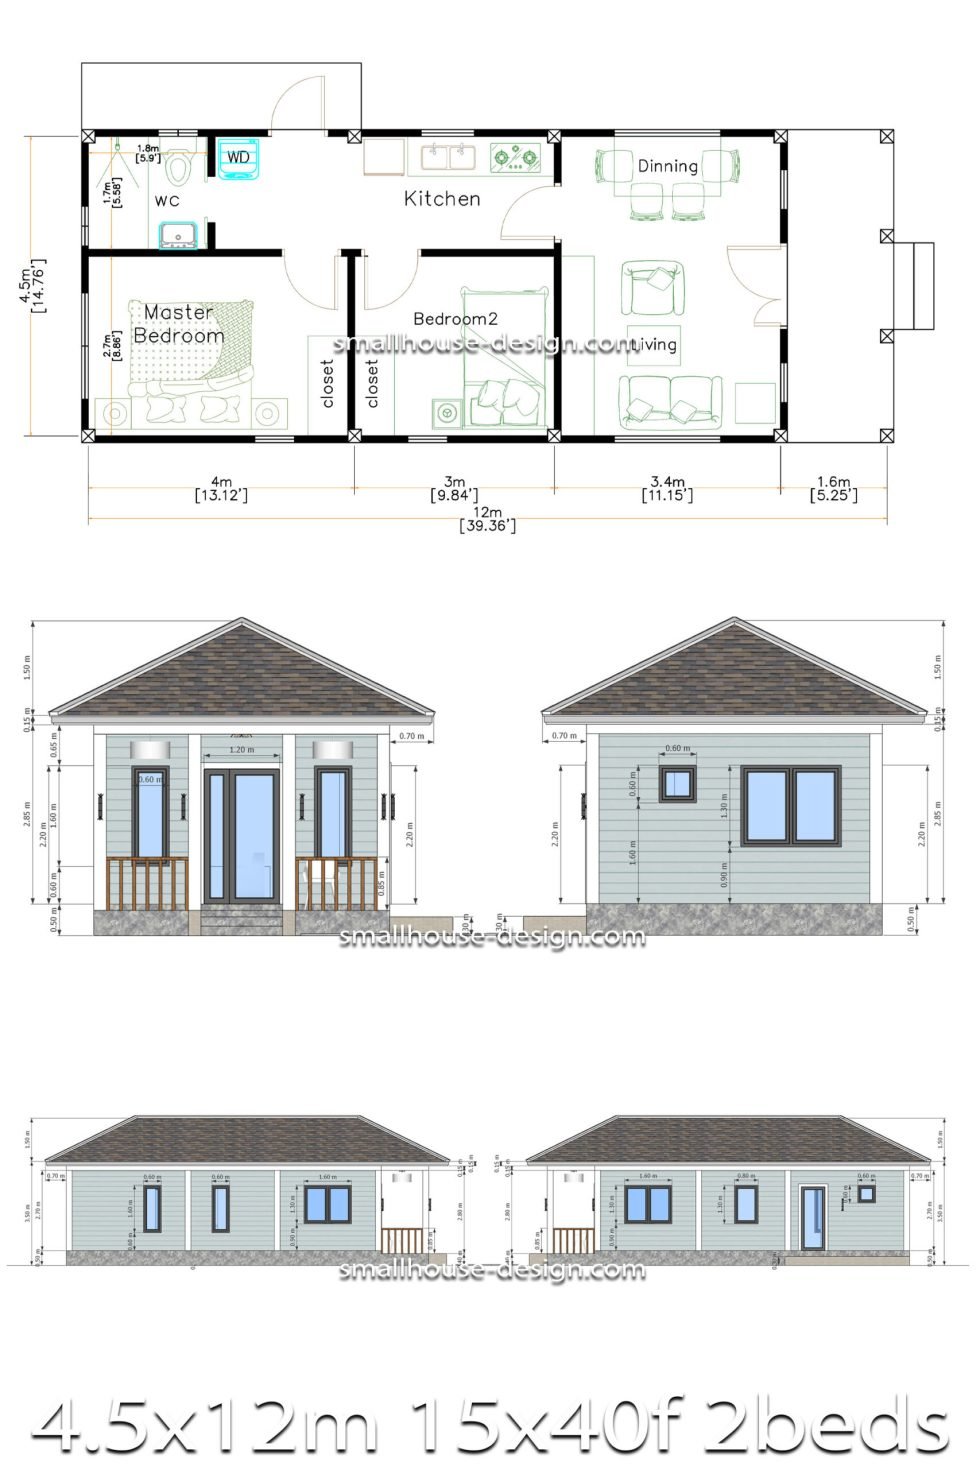 Small House Design 4.5x12 Meters 2 Beds Hip Roof all